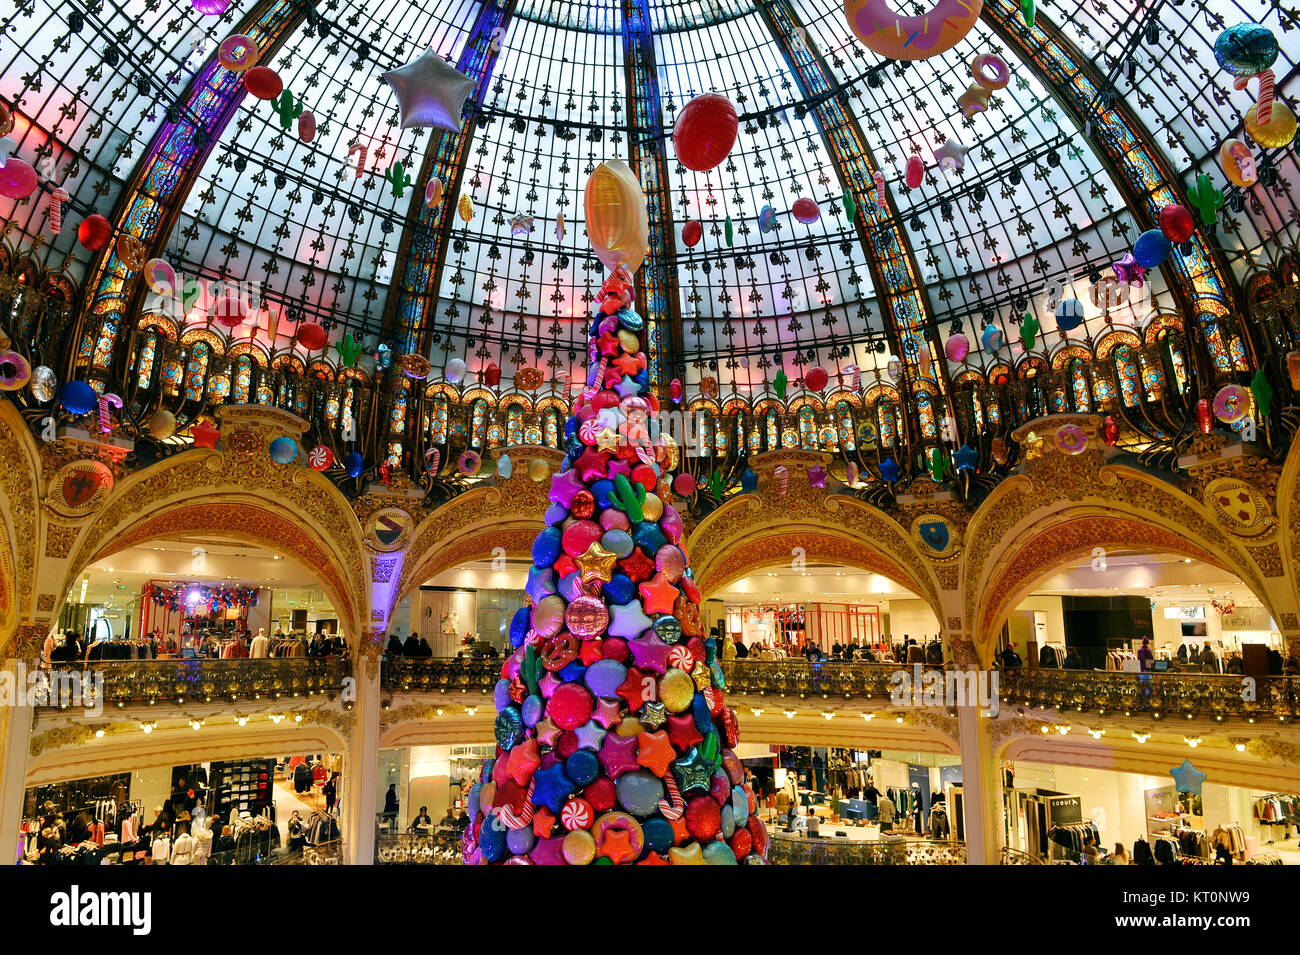 Galeries Lafayette Christmas glass roof - Paris 9th - France - Stock Image